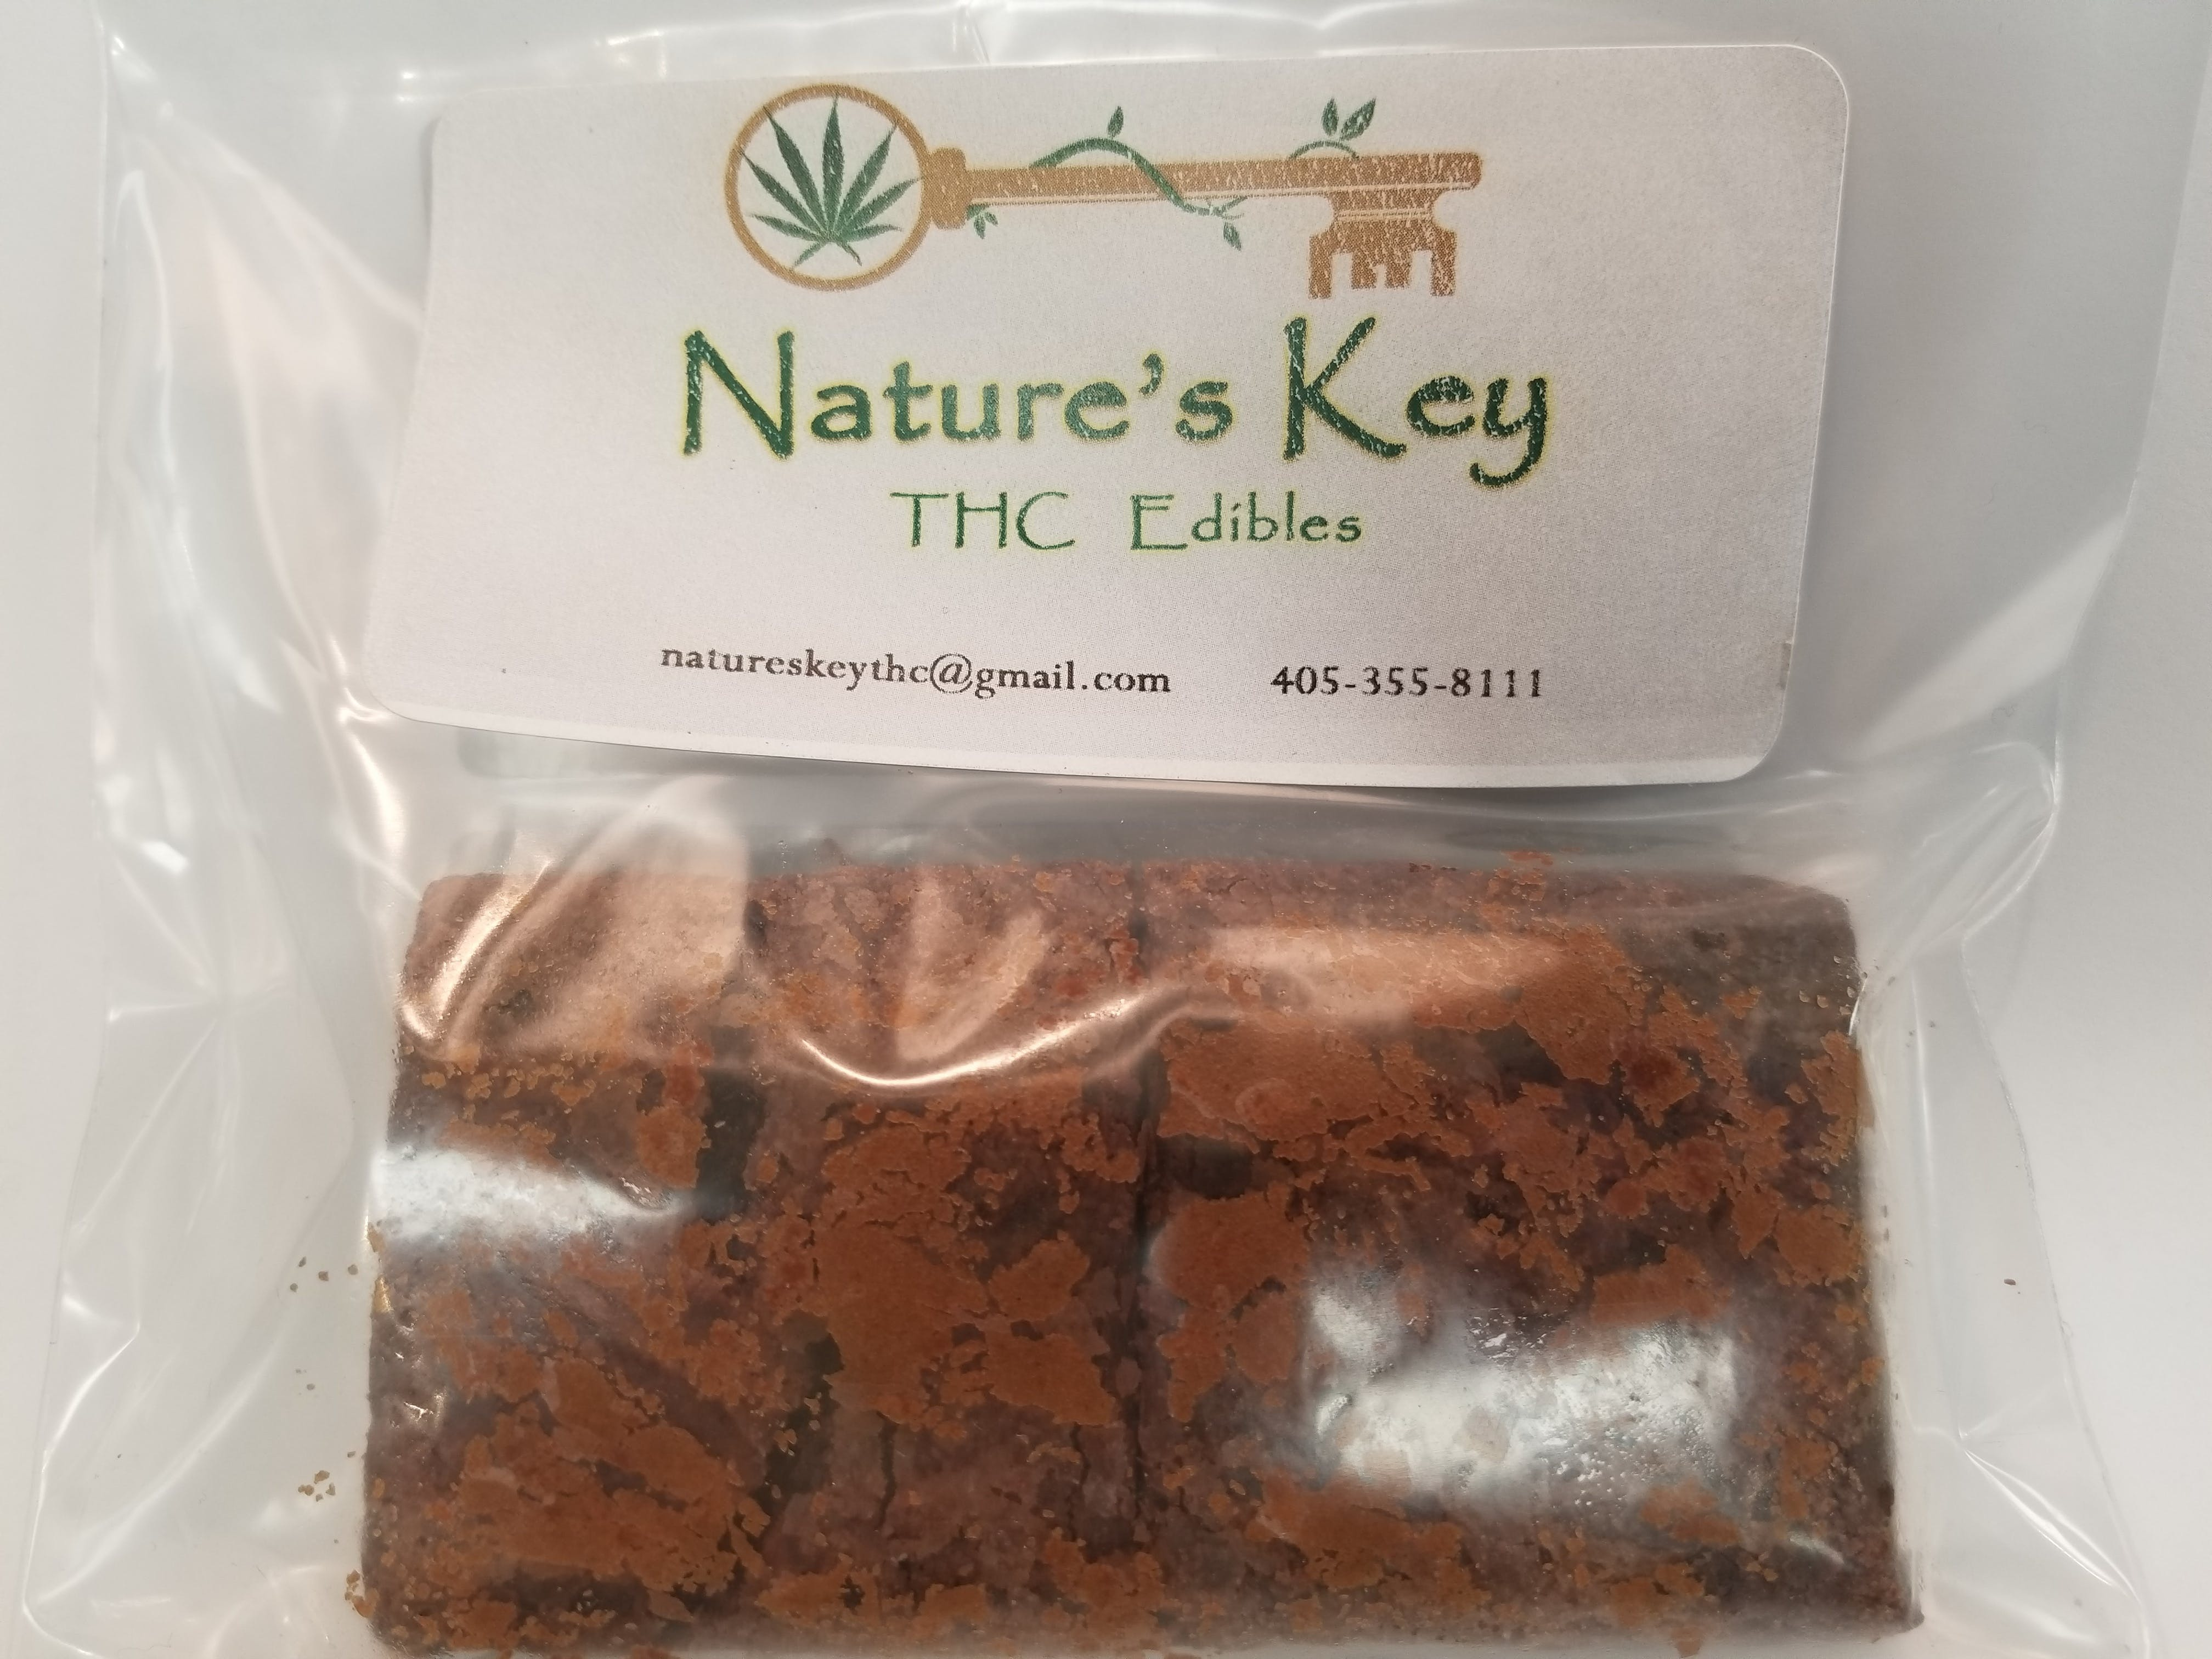 marijuana-dispensaries-7727-e-21st-tulsa-natures-key-brownies